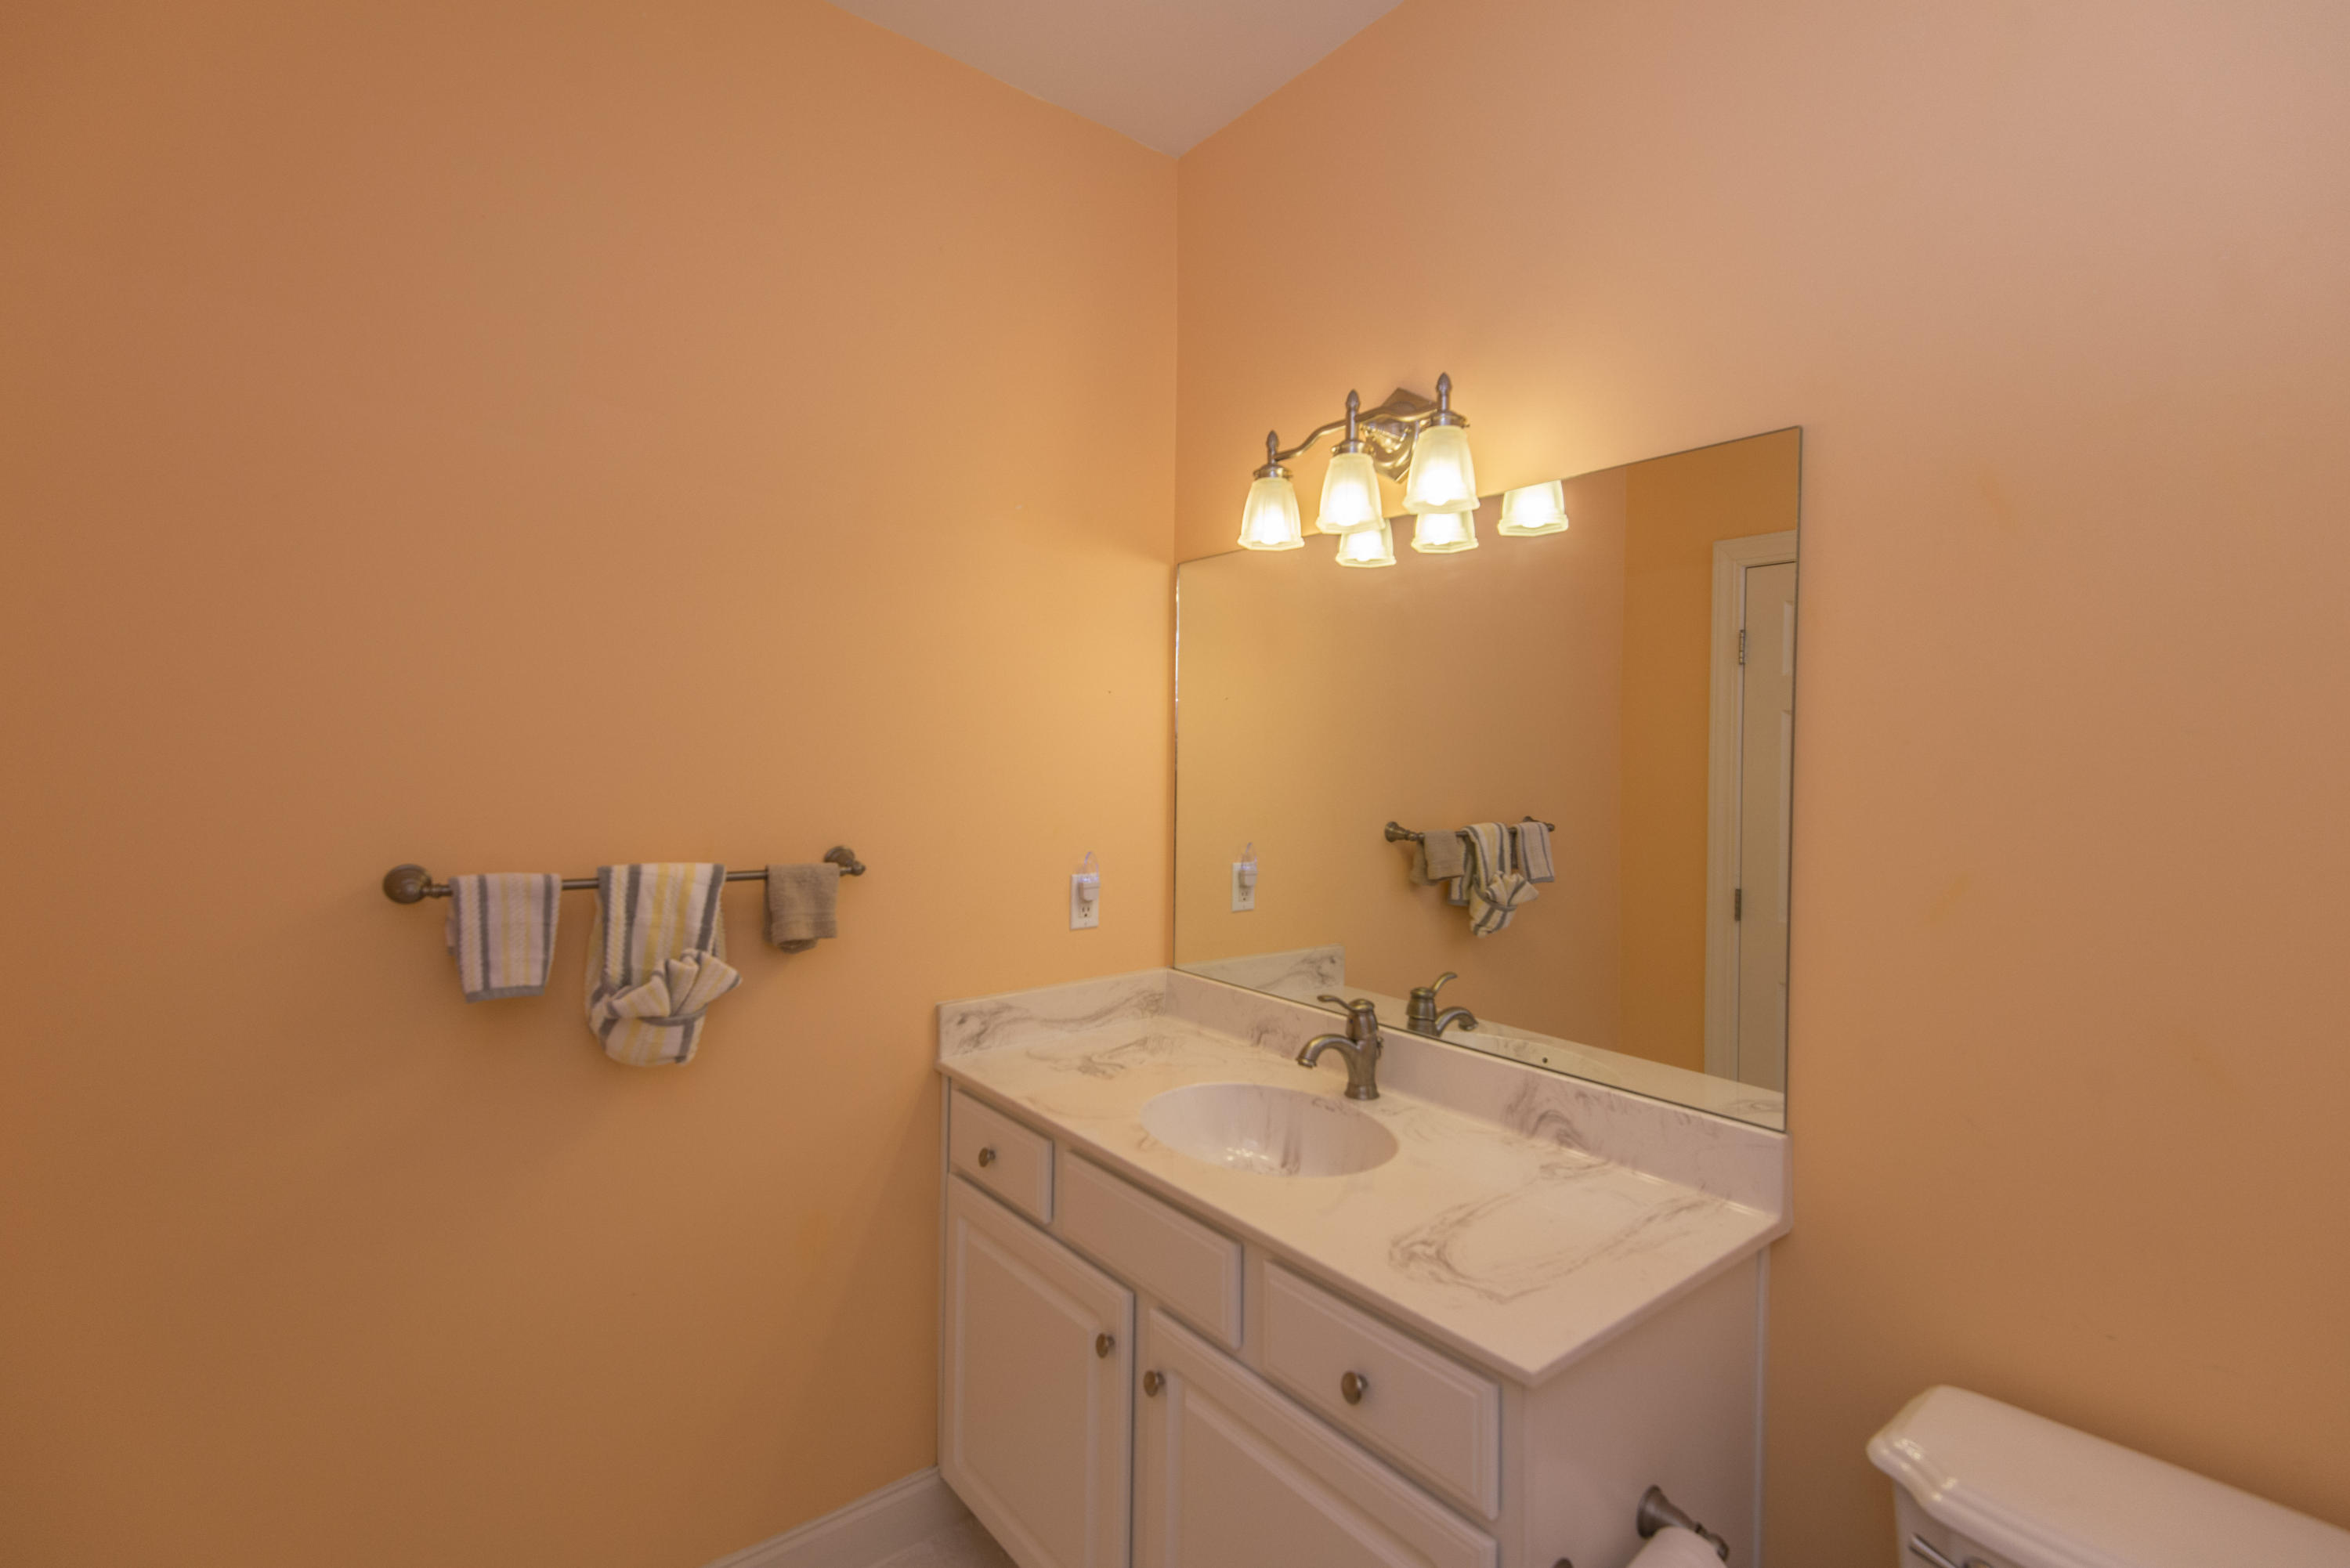 The Villages In St Johns Woods Homes For Sale - 4087 Amy, Johns Island, SC - 41